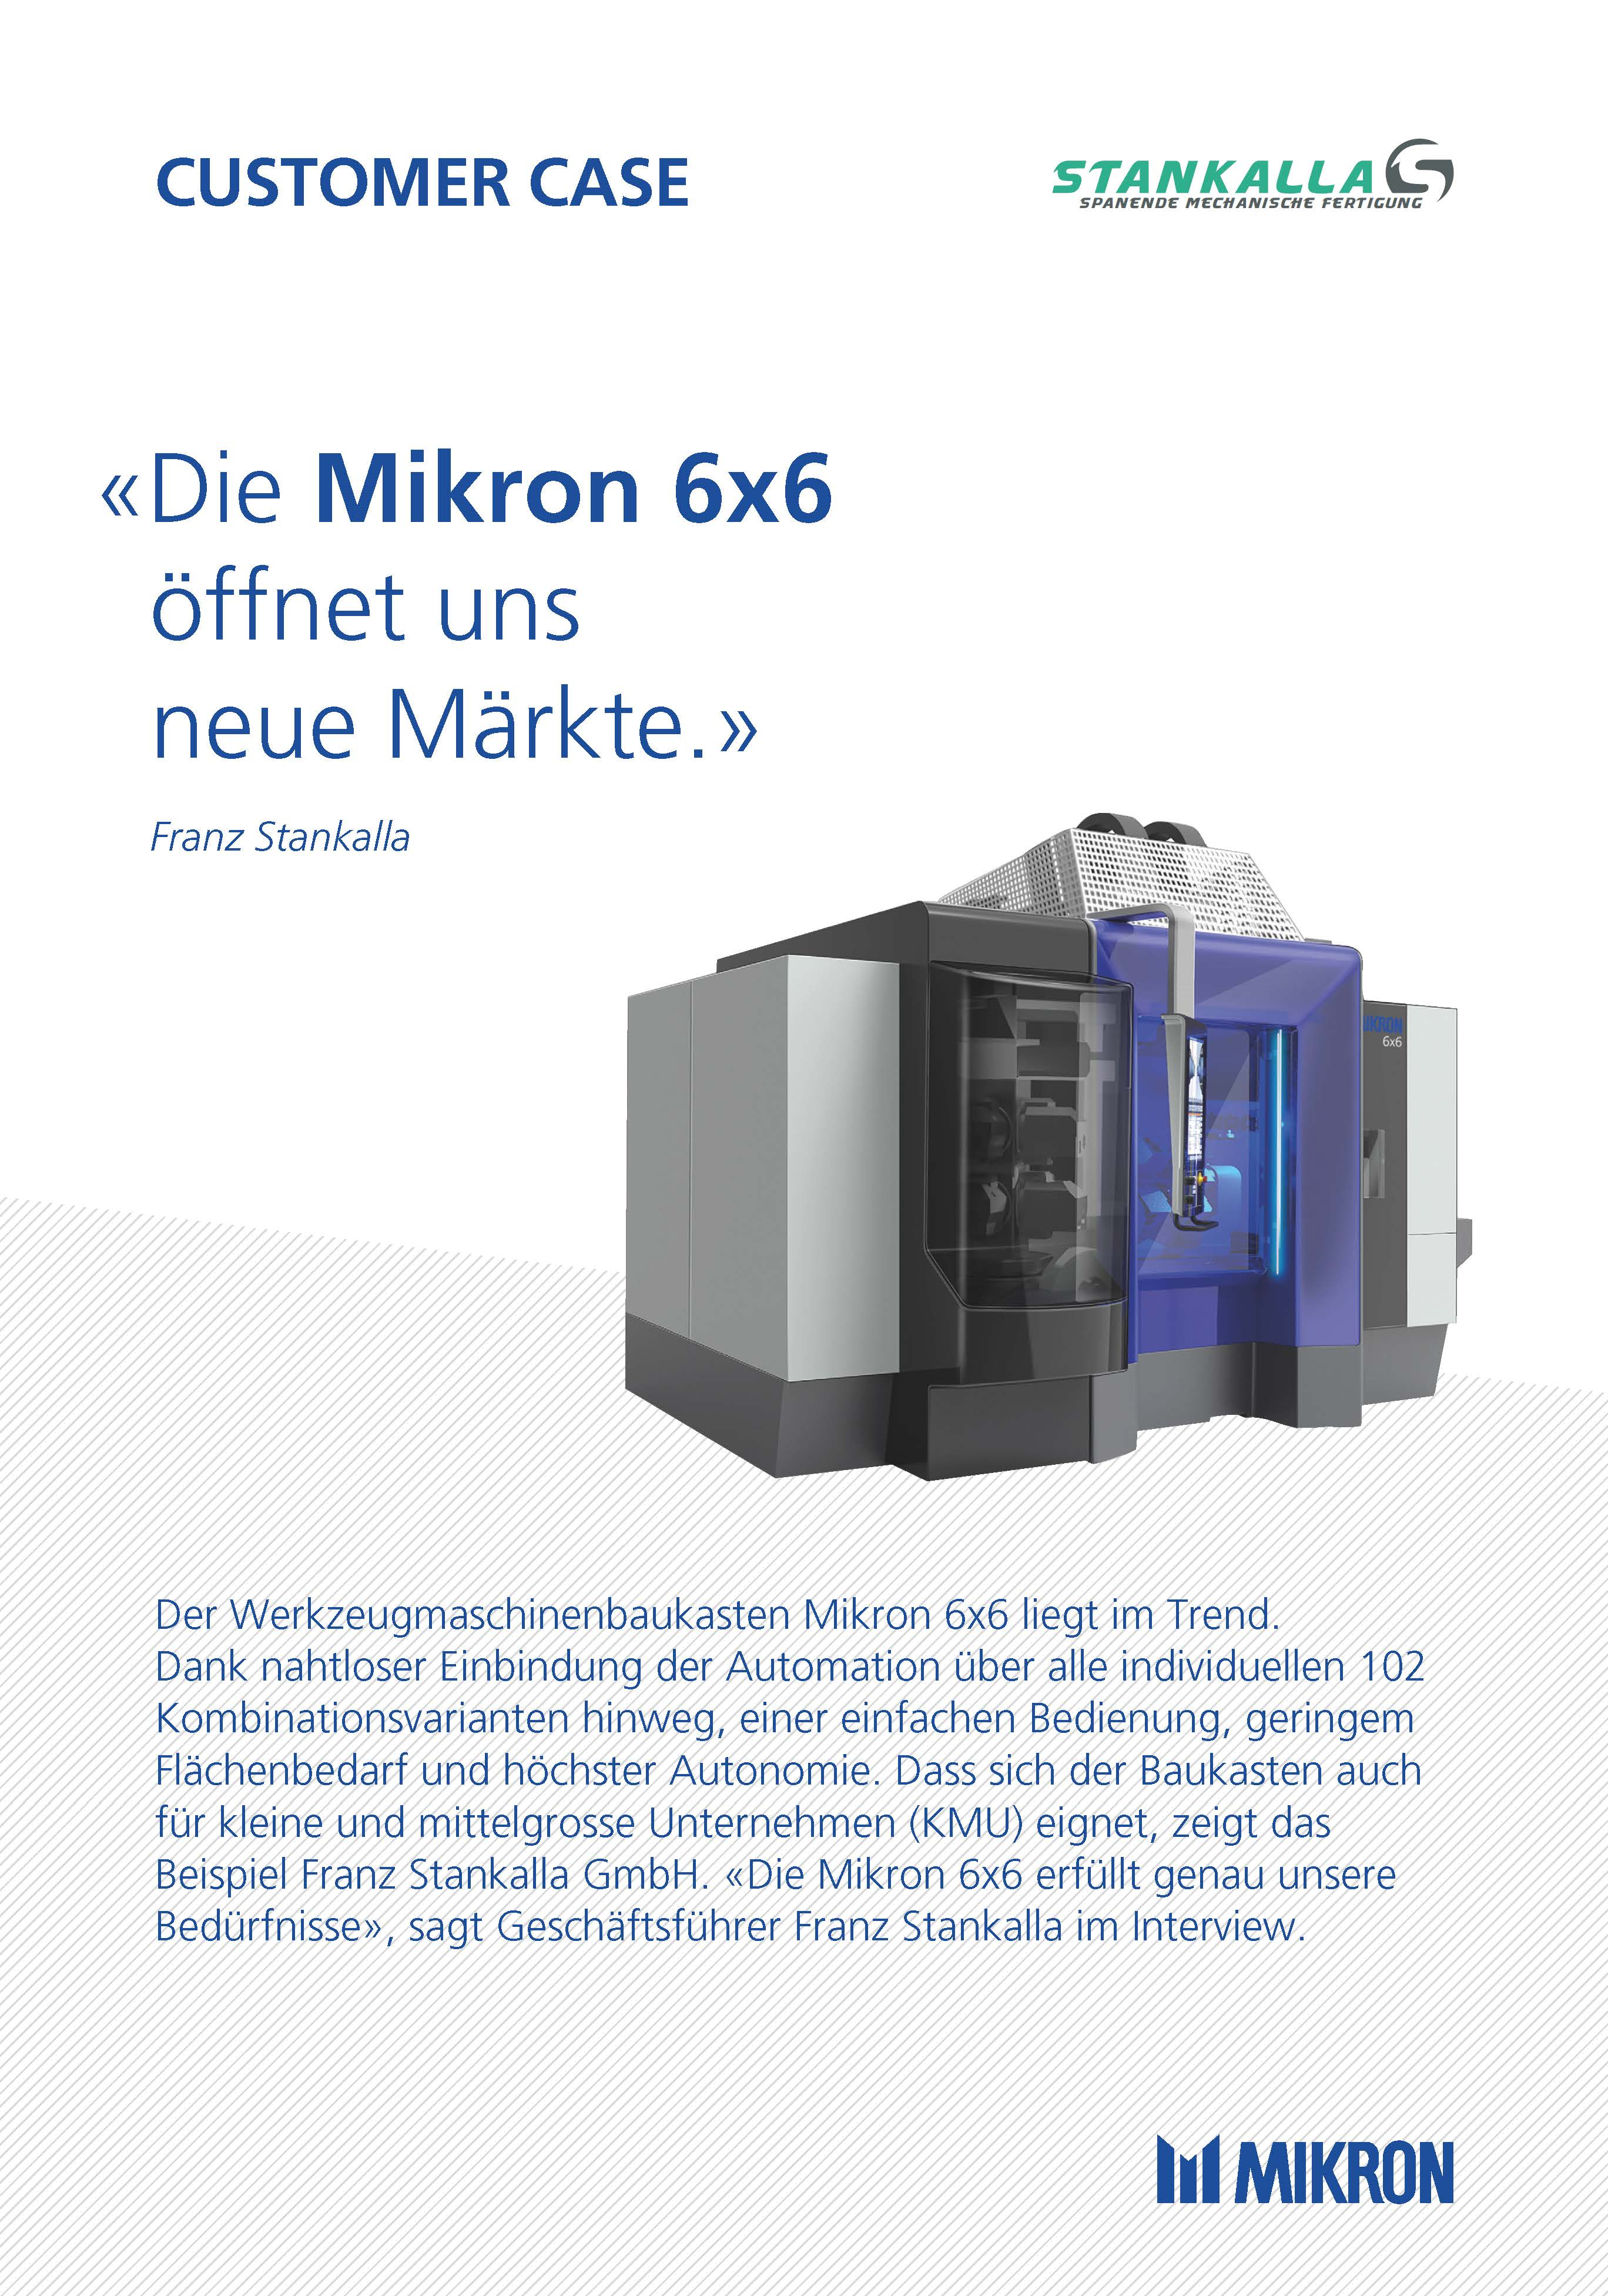 fileadmin/user_upload/03mikron_machining/news/2019/Franz_Stankalla_GmbH/191119_Mikron_6x6_Stankalla_Customer_Case_Seite_1.jpg